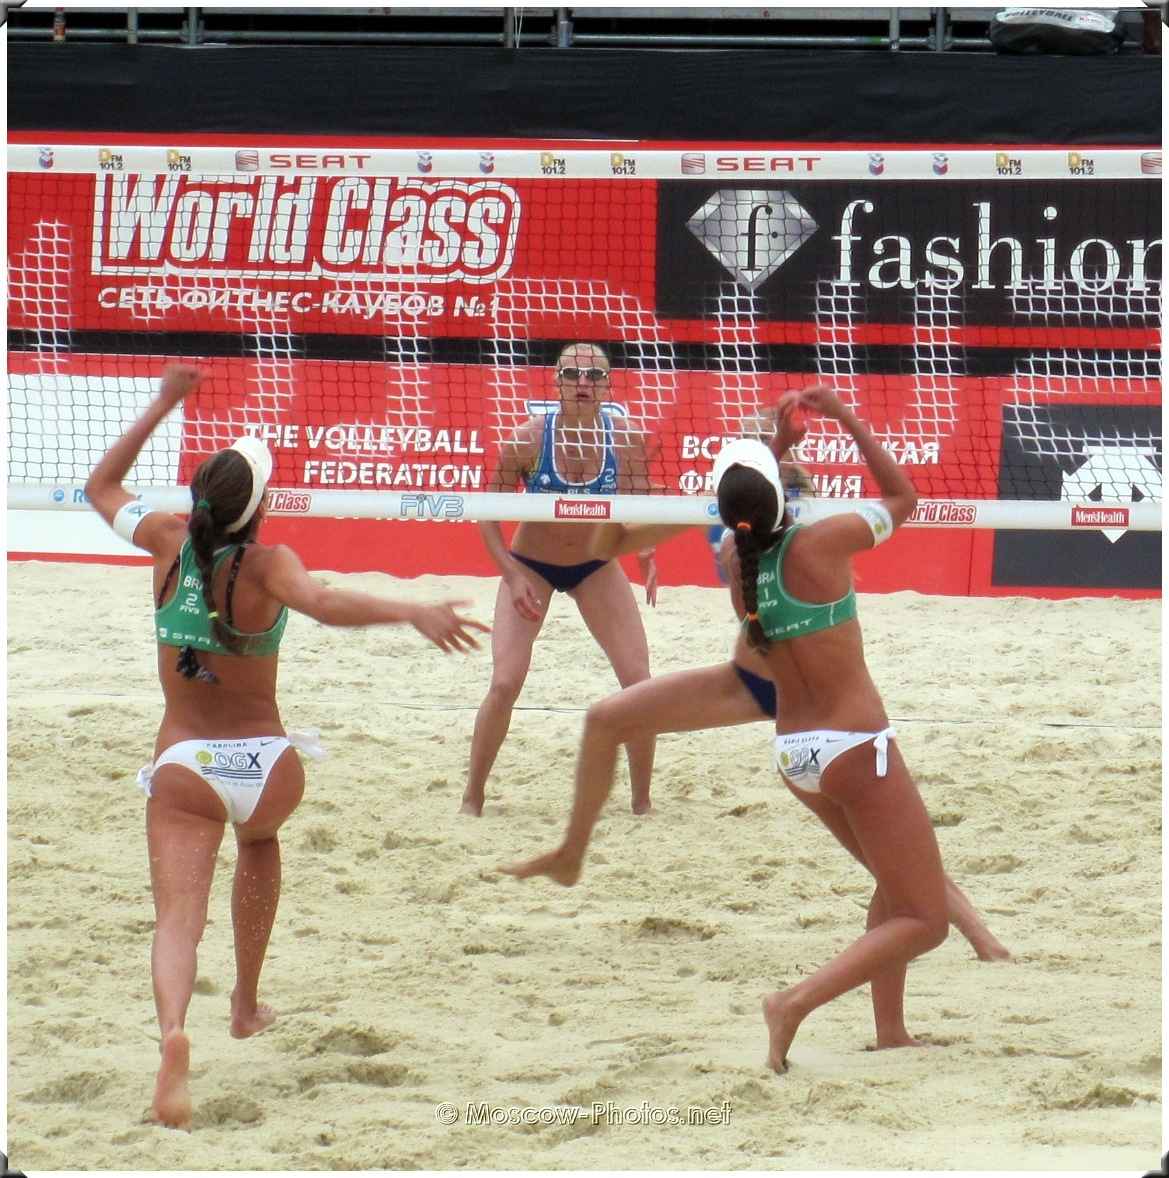 DEFENSIVE COVERAGE OF BRAZIL BEACH VOLLEY TEAM